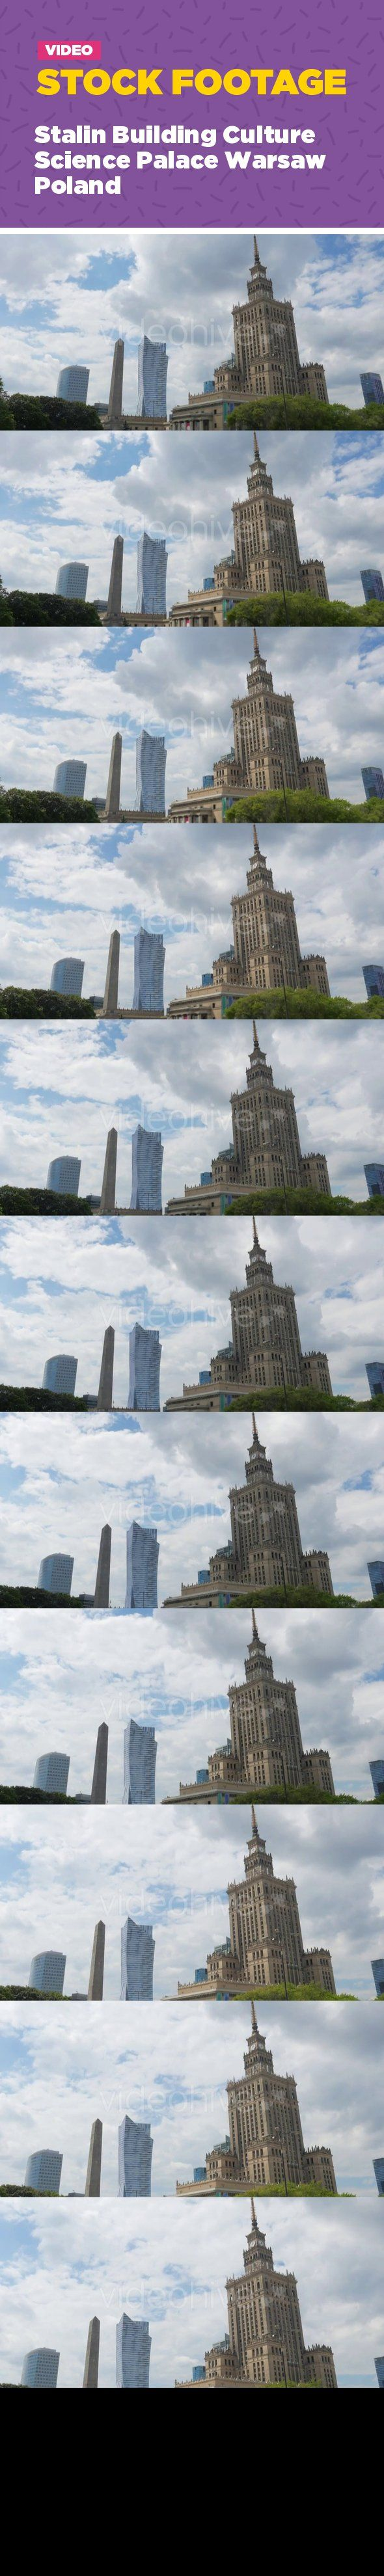 building, city, cityscape, cloud, europe, landmark, poland, scene, sky, skyline, skyscraper, timelapse, travel, view, warsaw HD version of Great 4k uhd timelapse footage.. Daytime and night time, zoom in zoom out and stabile versions of time lapse footages are available. Warsaw (Polish: Warszawa) is the capital and largest city of Poland. It stands on the Vistula River in east-central Poland, In 2012 the Economist Intelligence Unit ranked Warsaw as the 32nd most liveable city in the world…